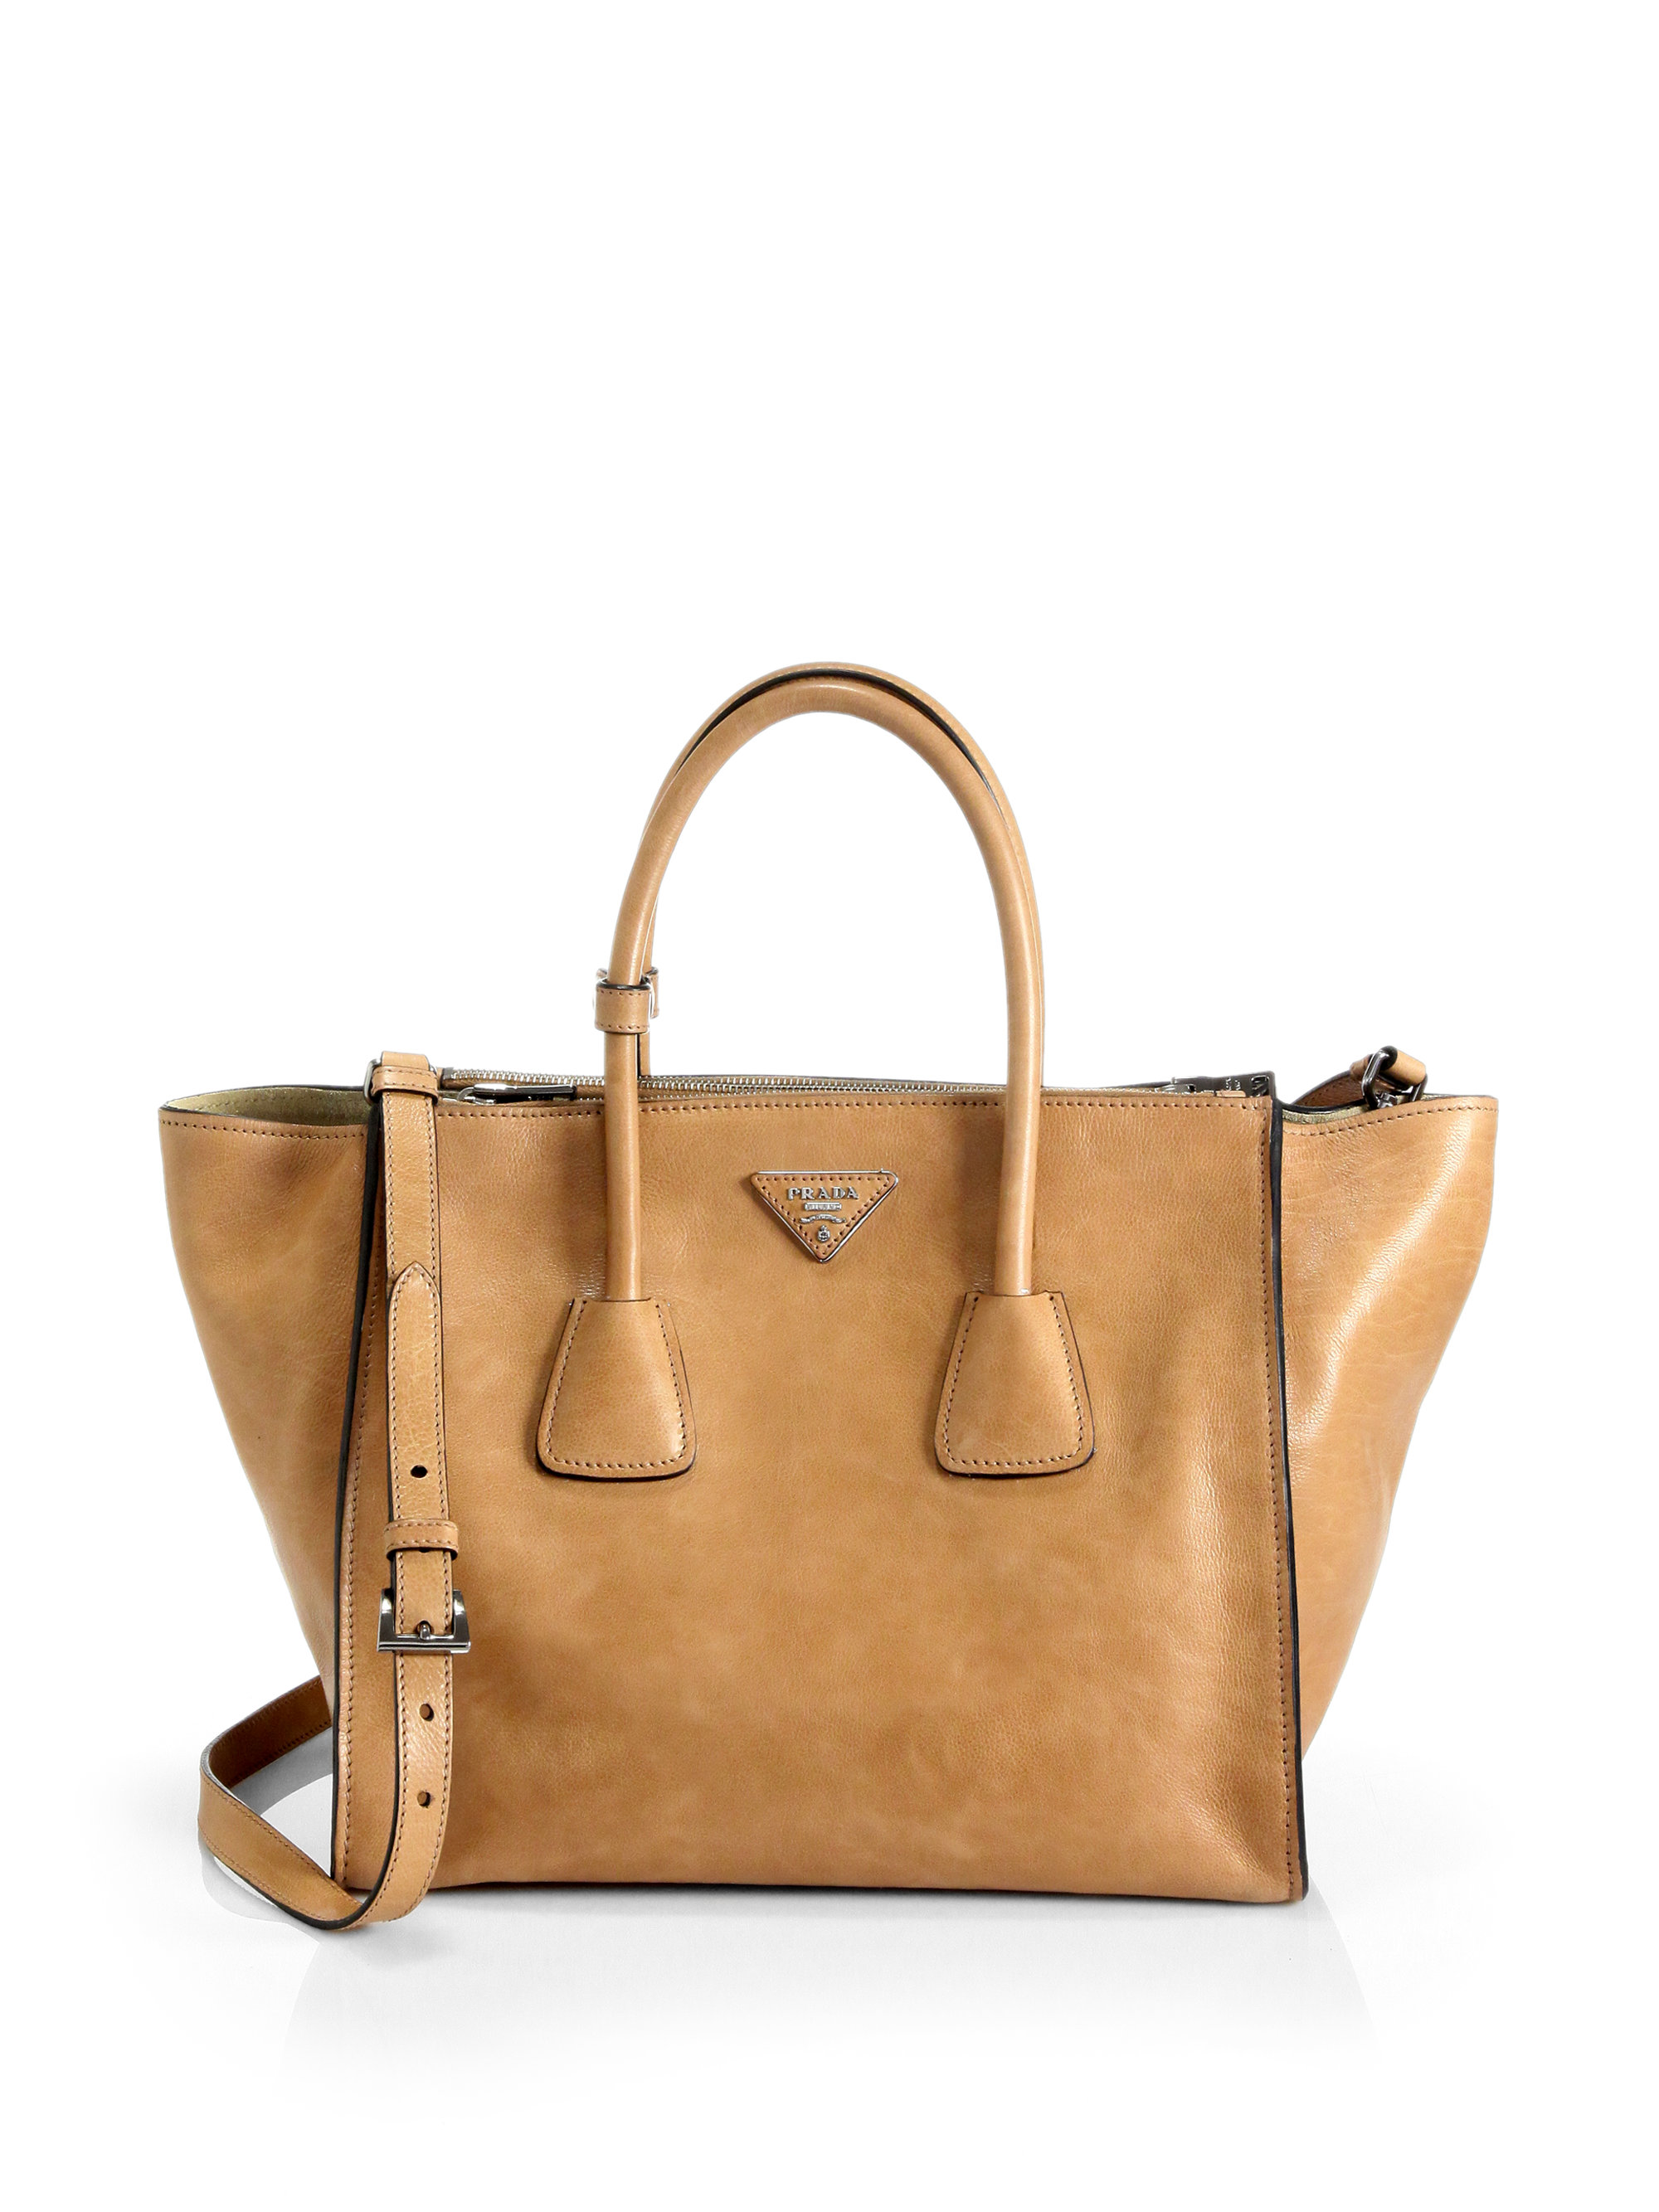 b846bd036f19d Prada Glace Calf Twin Pocket Tote in Brown - Lyst